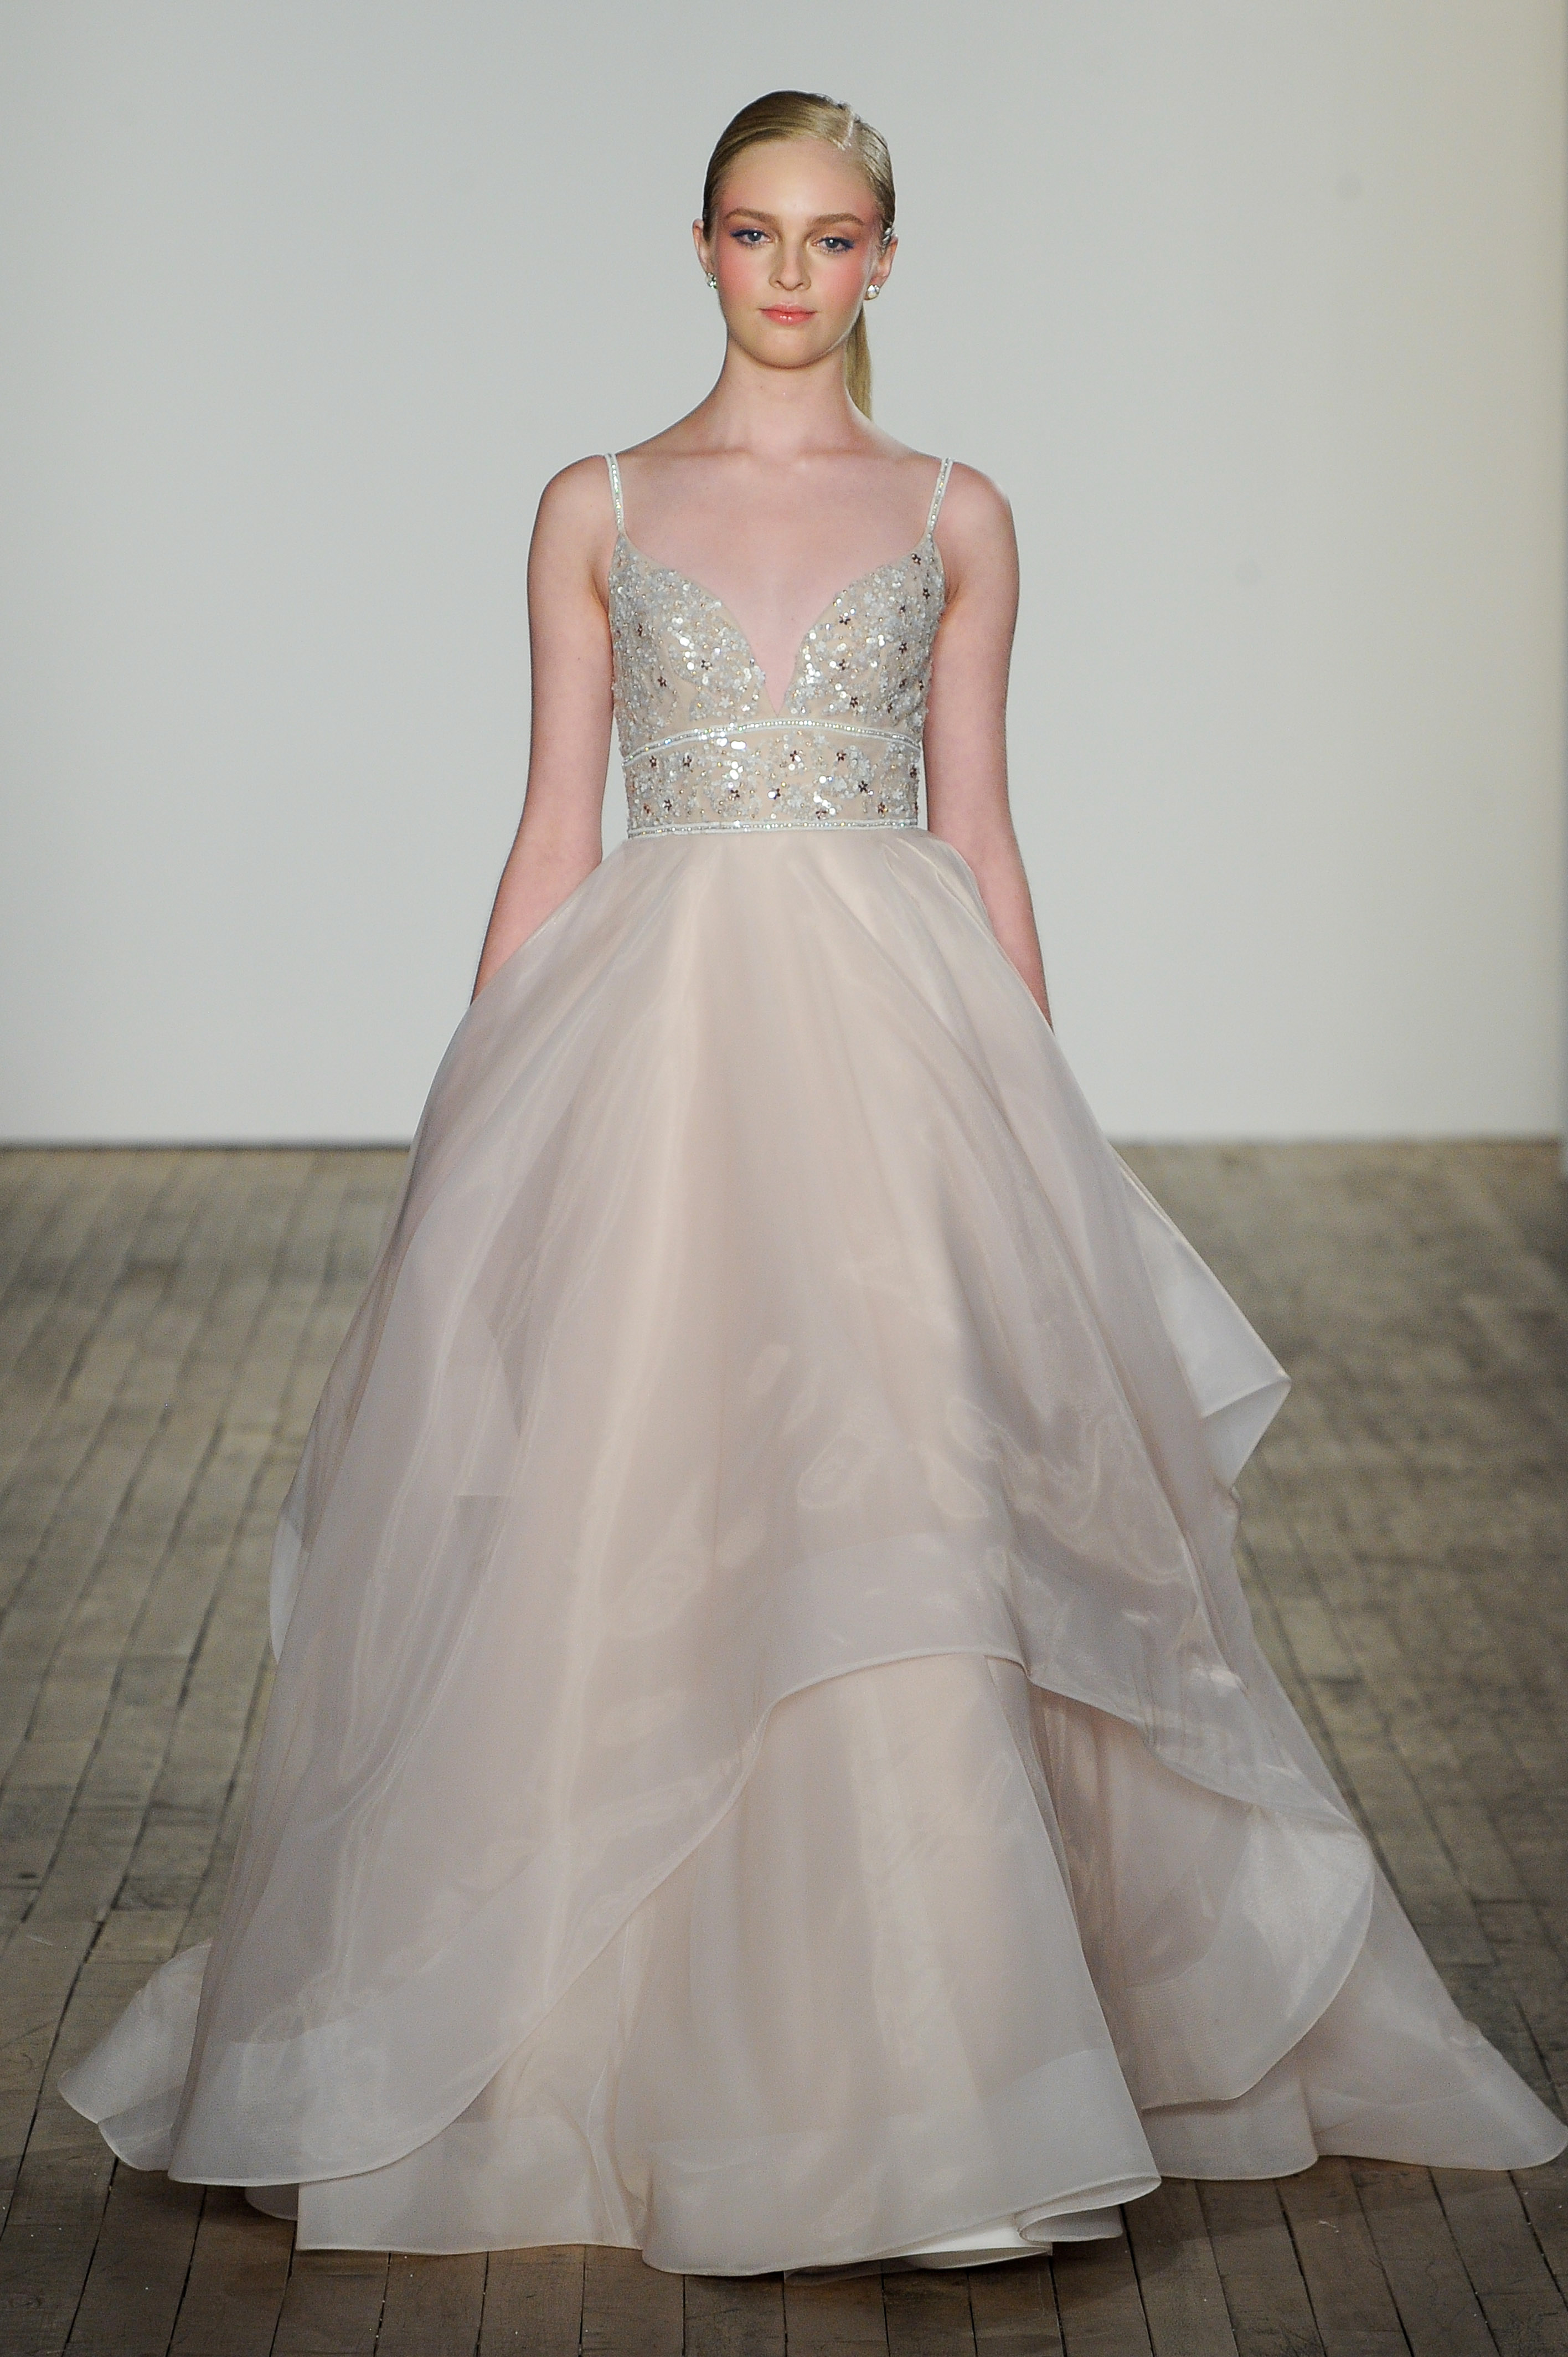 blush by hayley paige fall 2019 v-neck beaded ball gown wedding dress